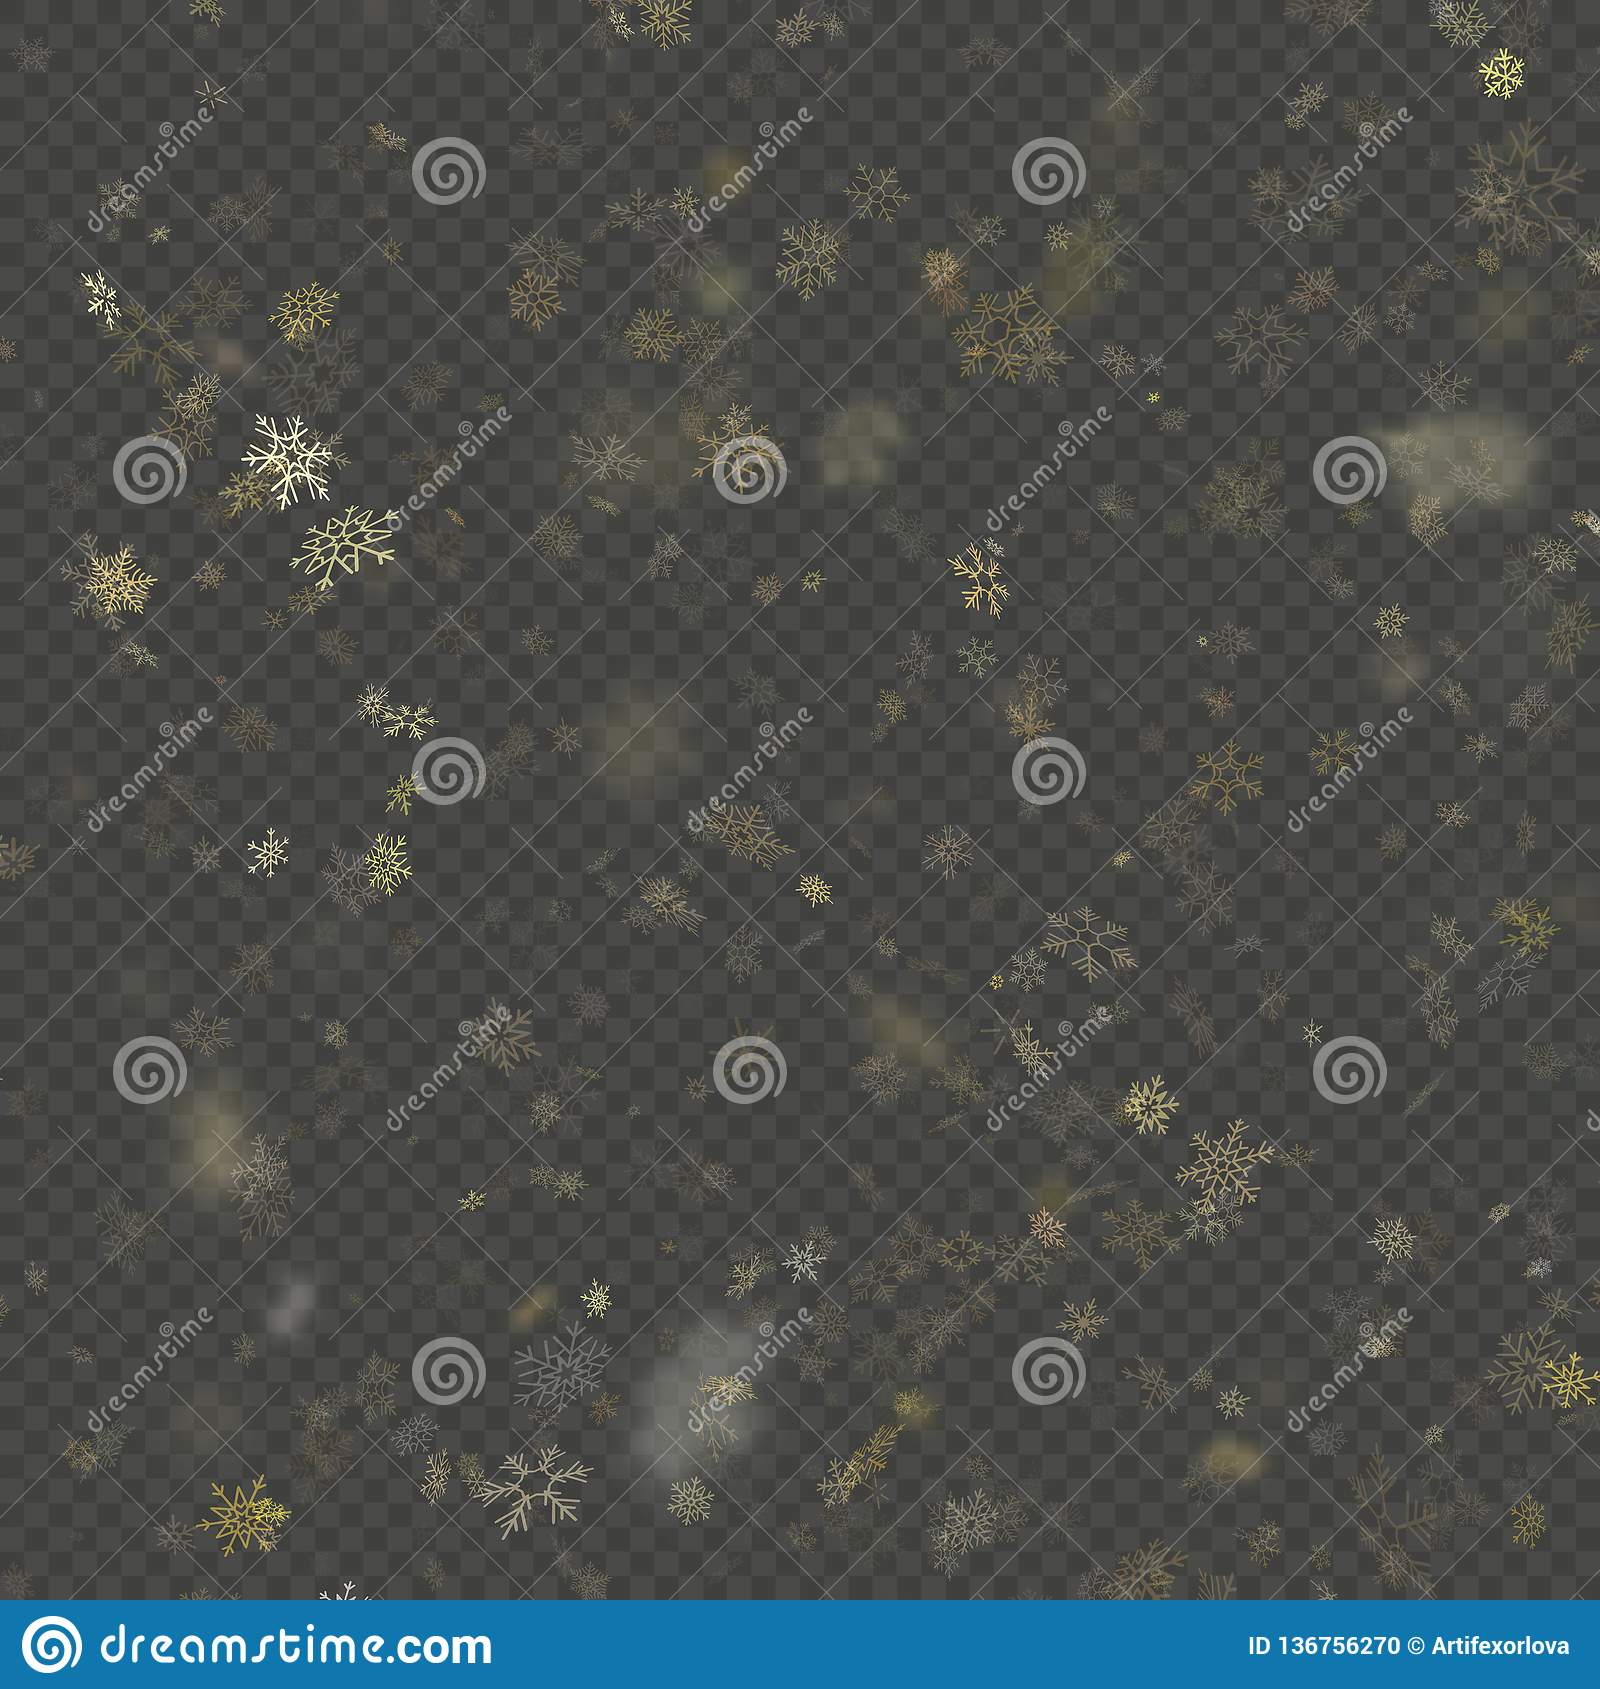 Falling snow flake golden overlay effect teplate isolated on transparent background. EPS 10